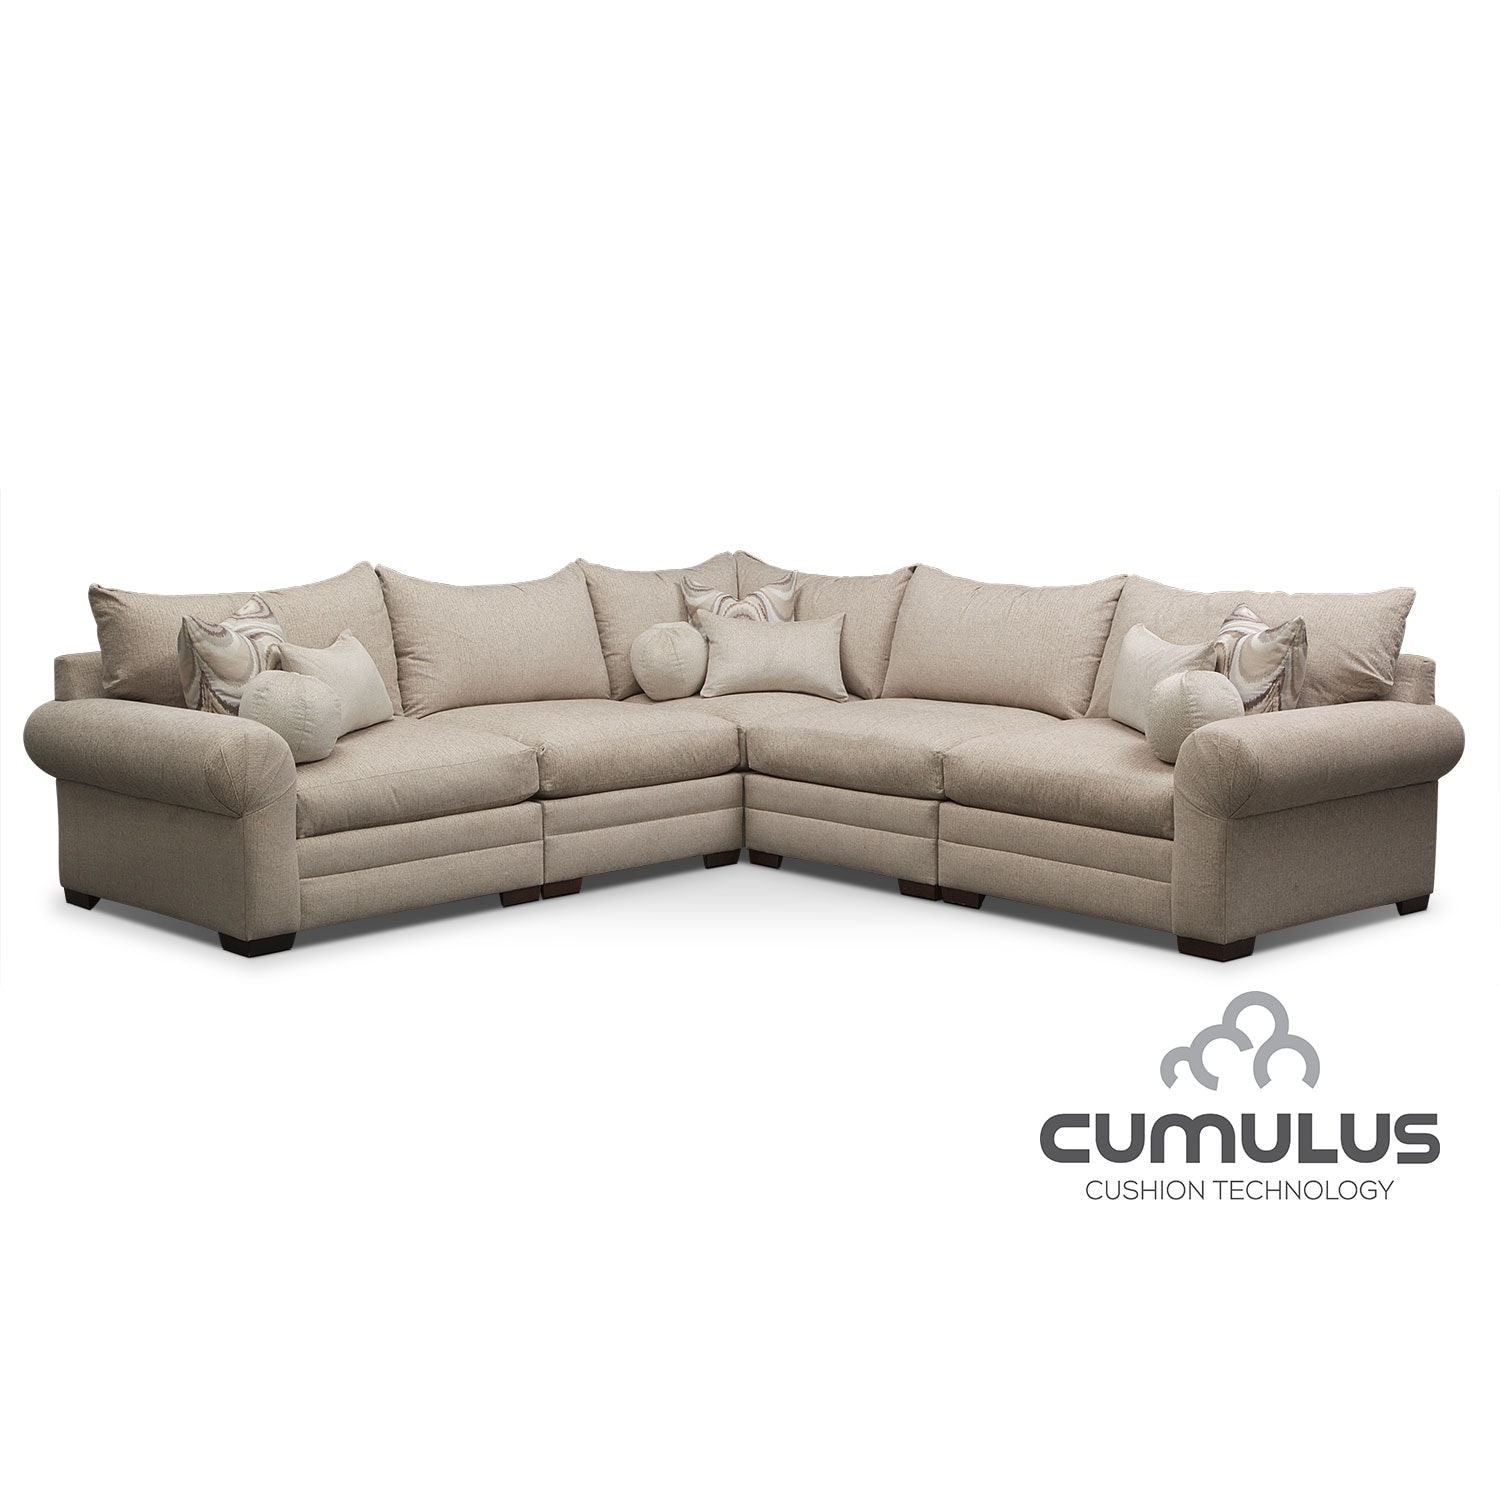 Living Room Furniture - Wilshire 5-Piece Sectional - Cream